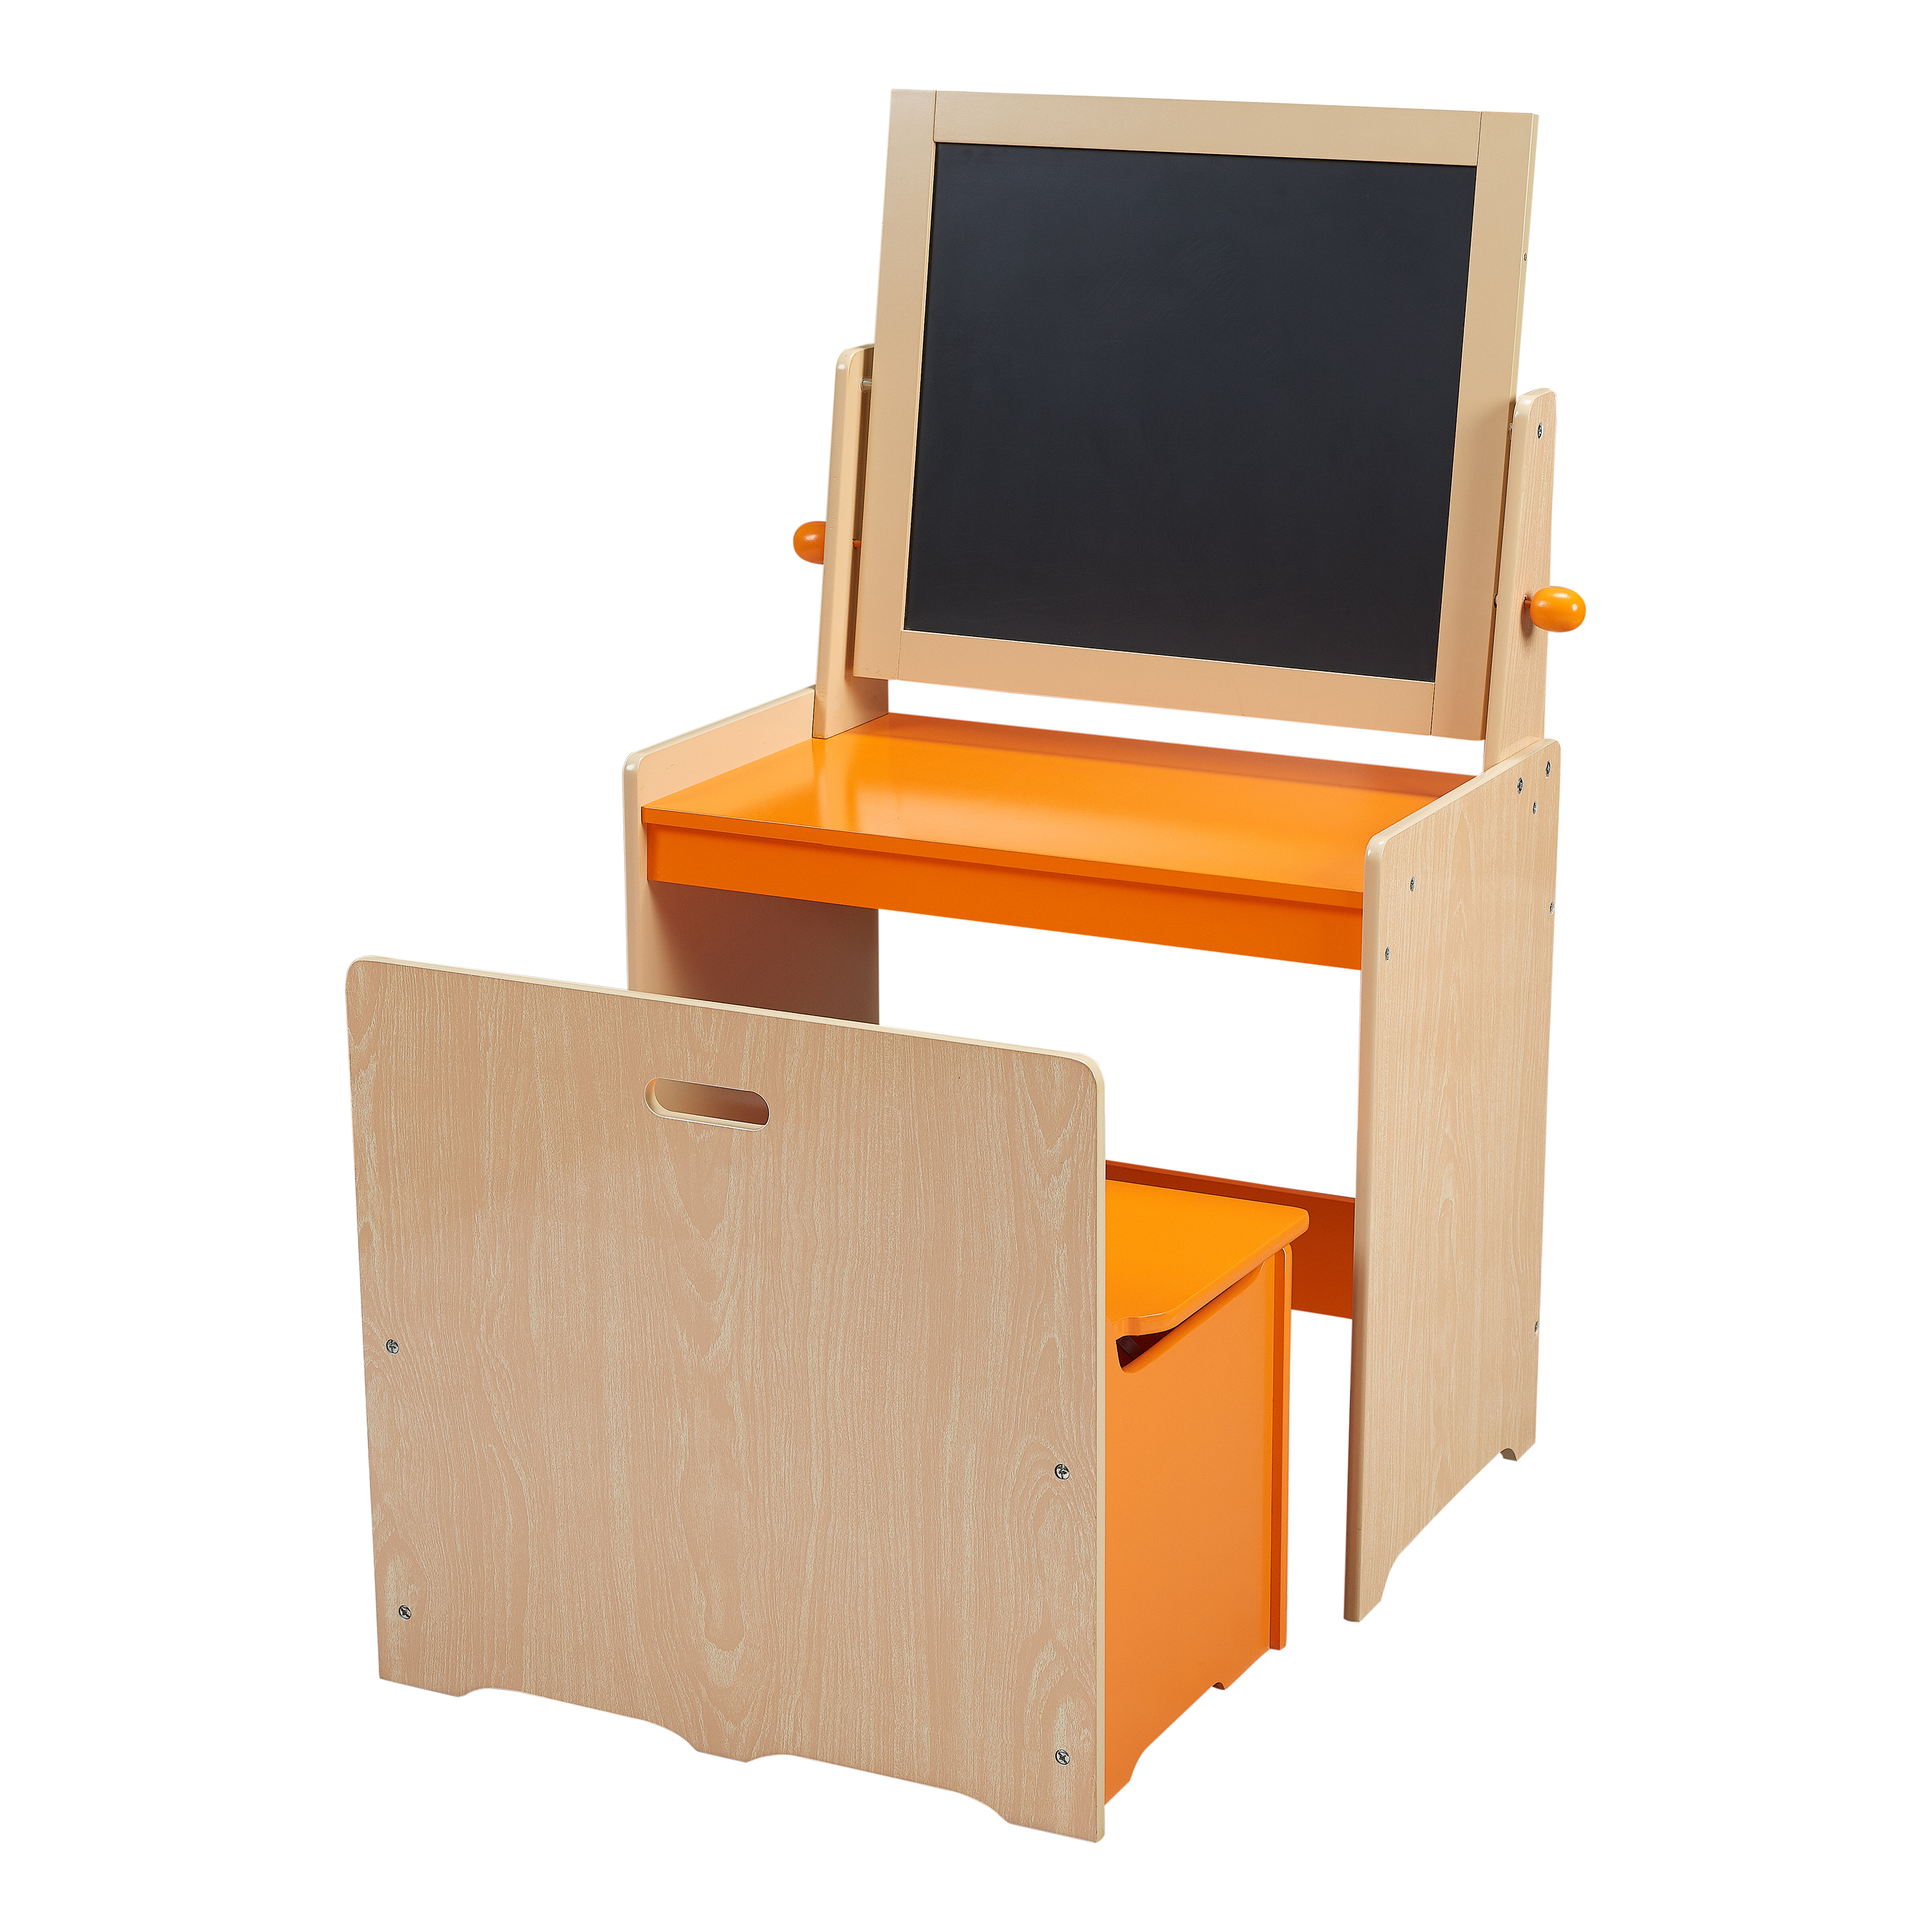 Senda Kids Art Desk and Chair with Wooden Activity Easel, Orange